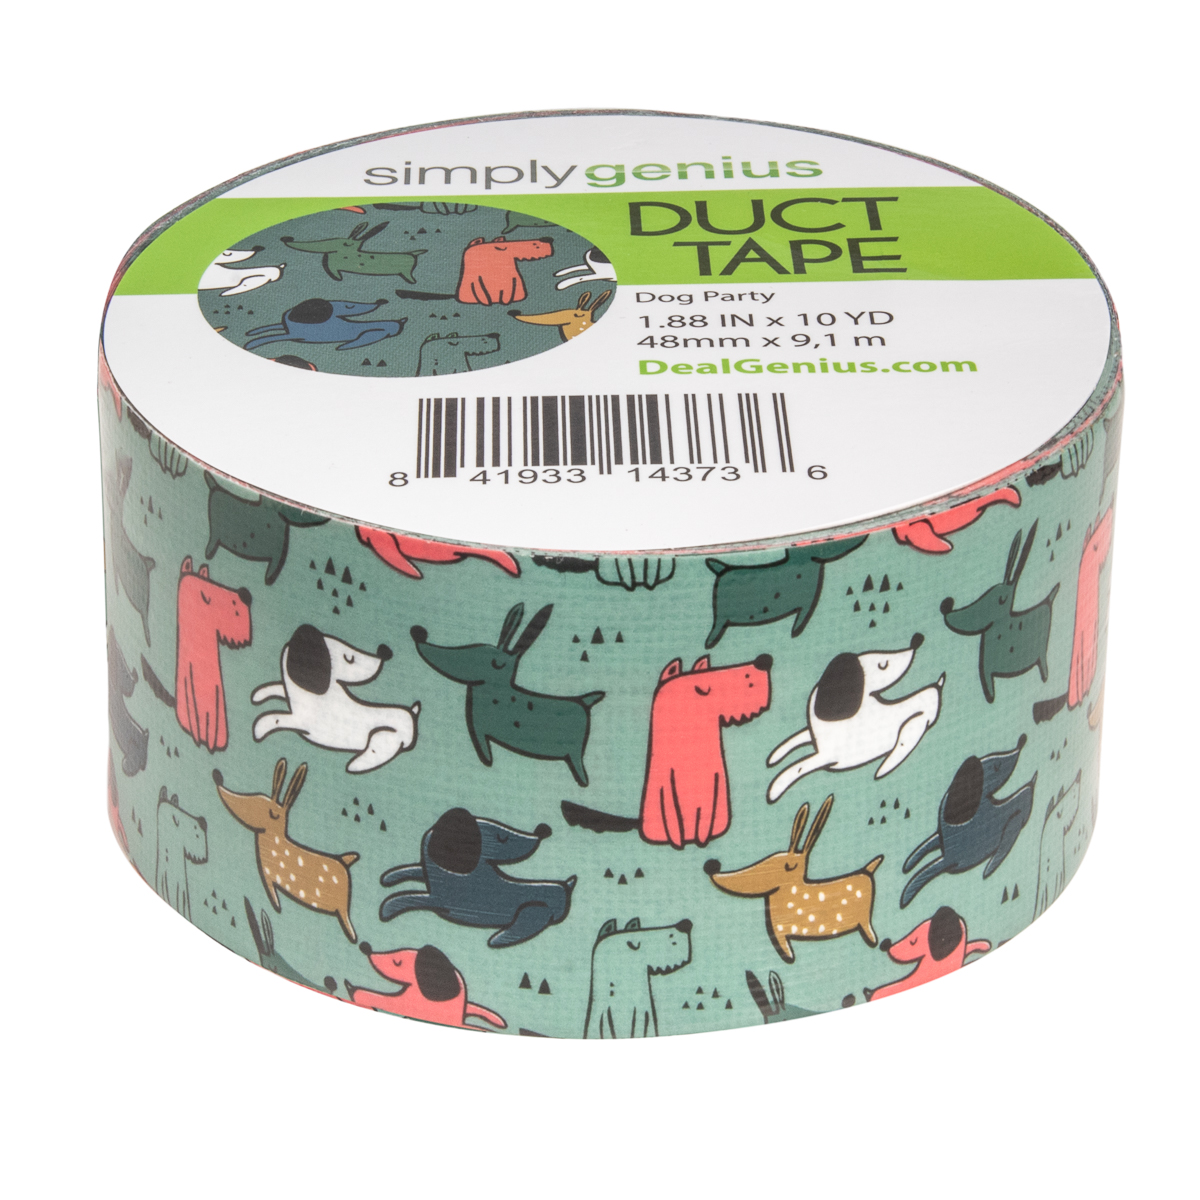 Simply-Genius-Duct-Tape-Roll-Colors-Patterns-Craft-Supplies-Colored-amp-Patterned thumbnail 48